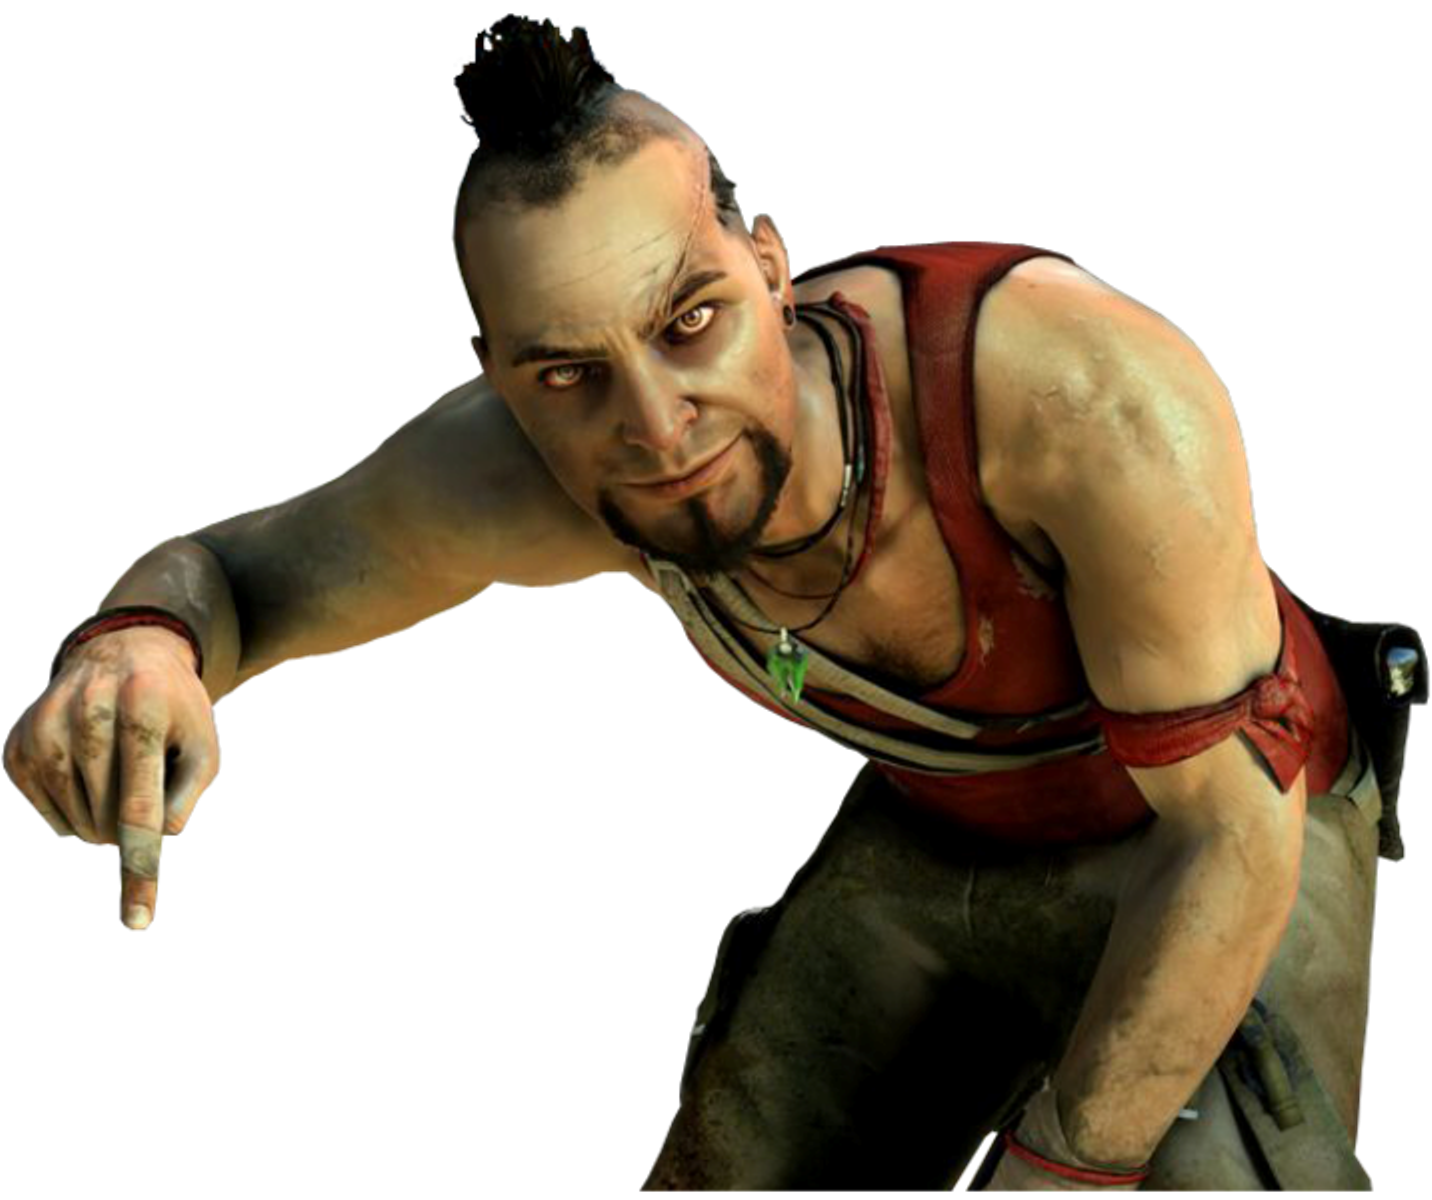 Far Cry 3 Vaas Games Wallpapers Hd Far Cry 3 Crying Rendering